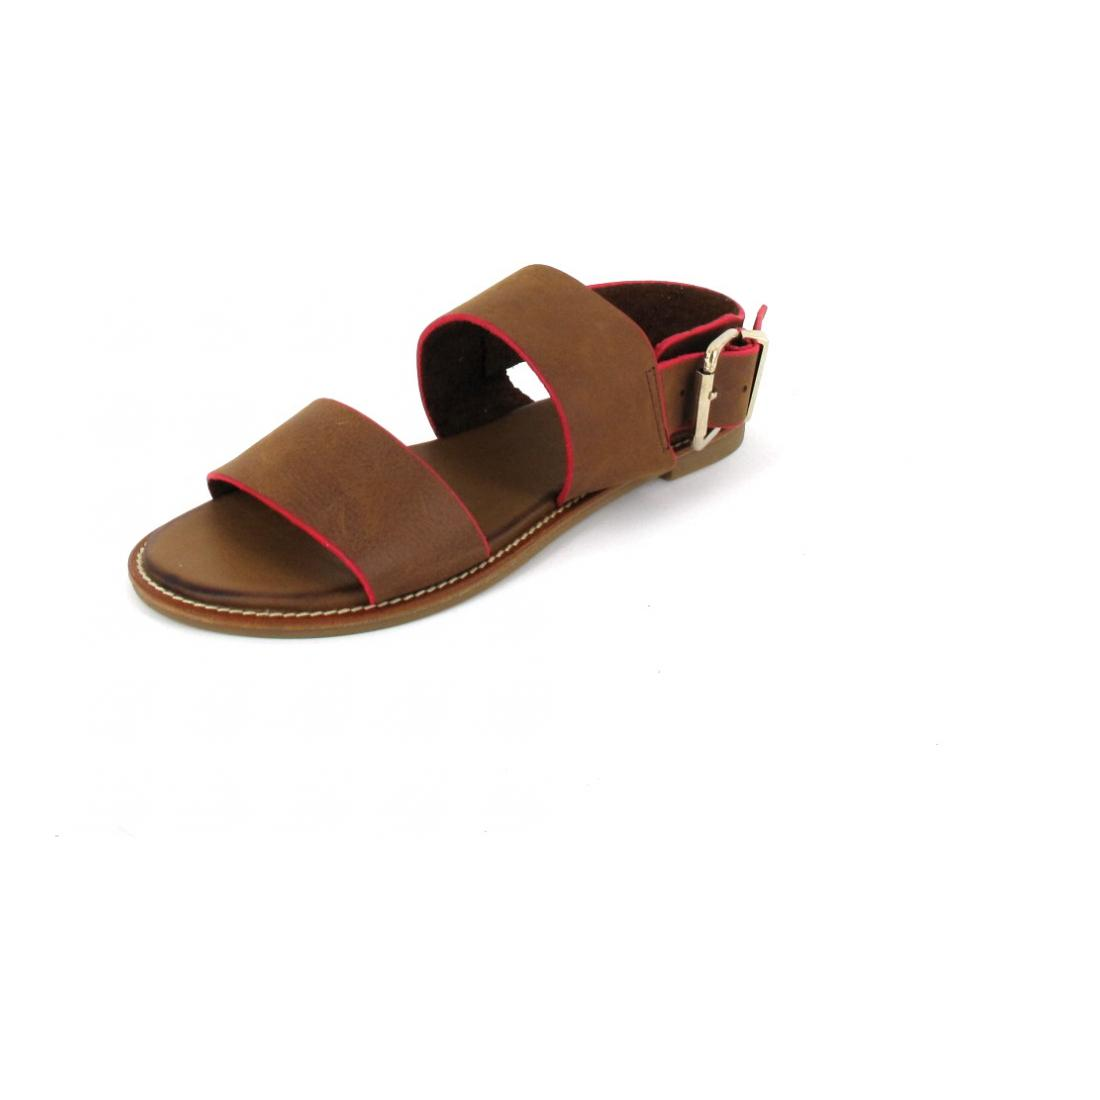 Inuovo Sandalette Sandals Tan-Neon Pink